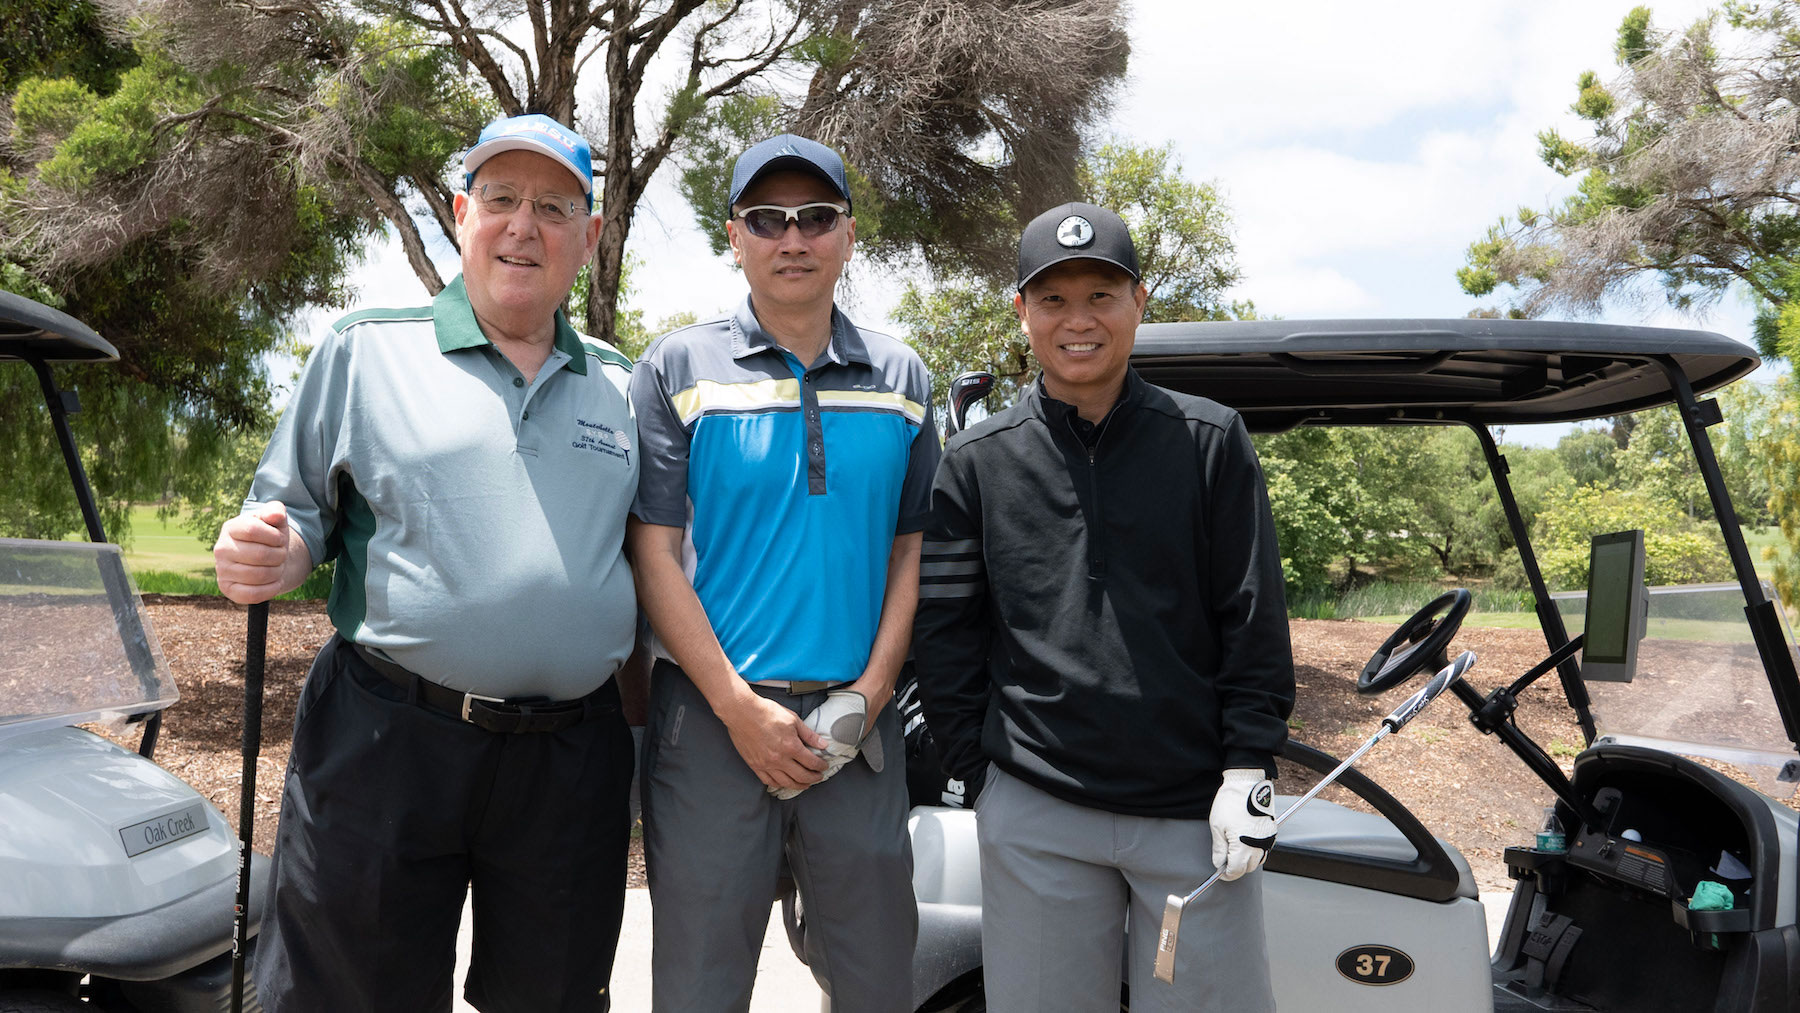 Nonprofit Waymakers golfers